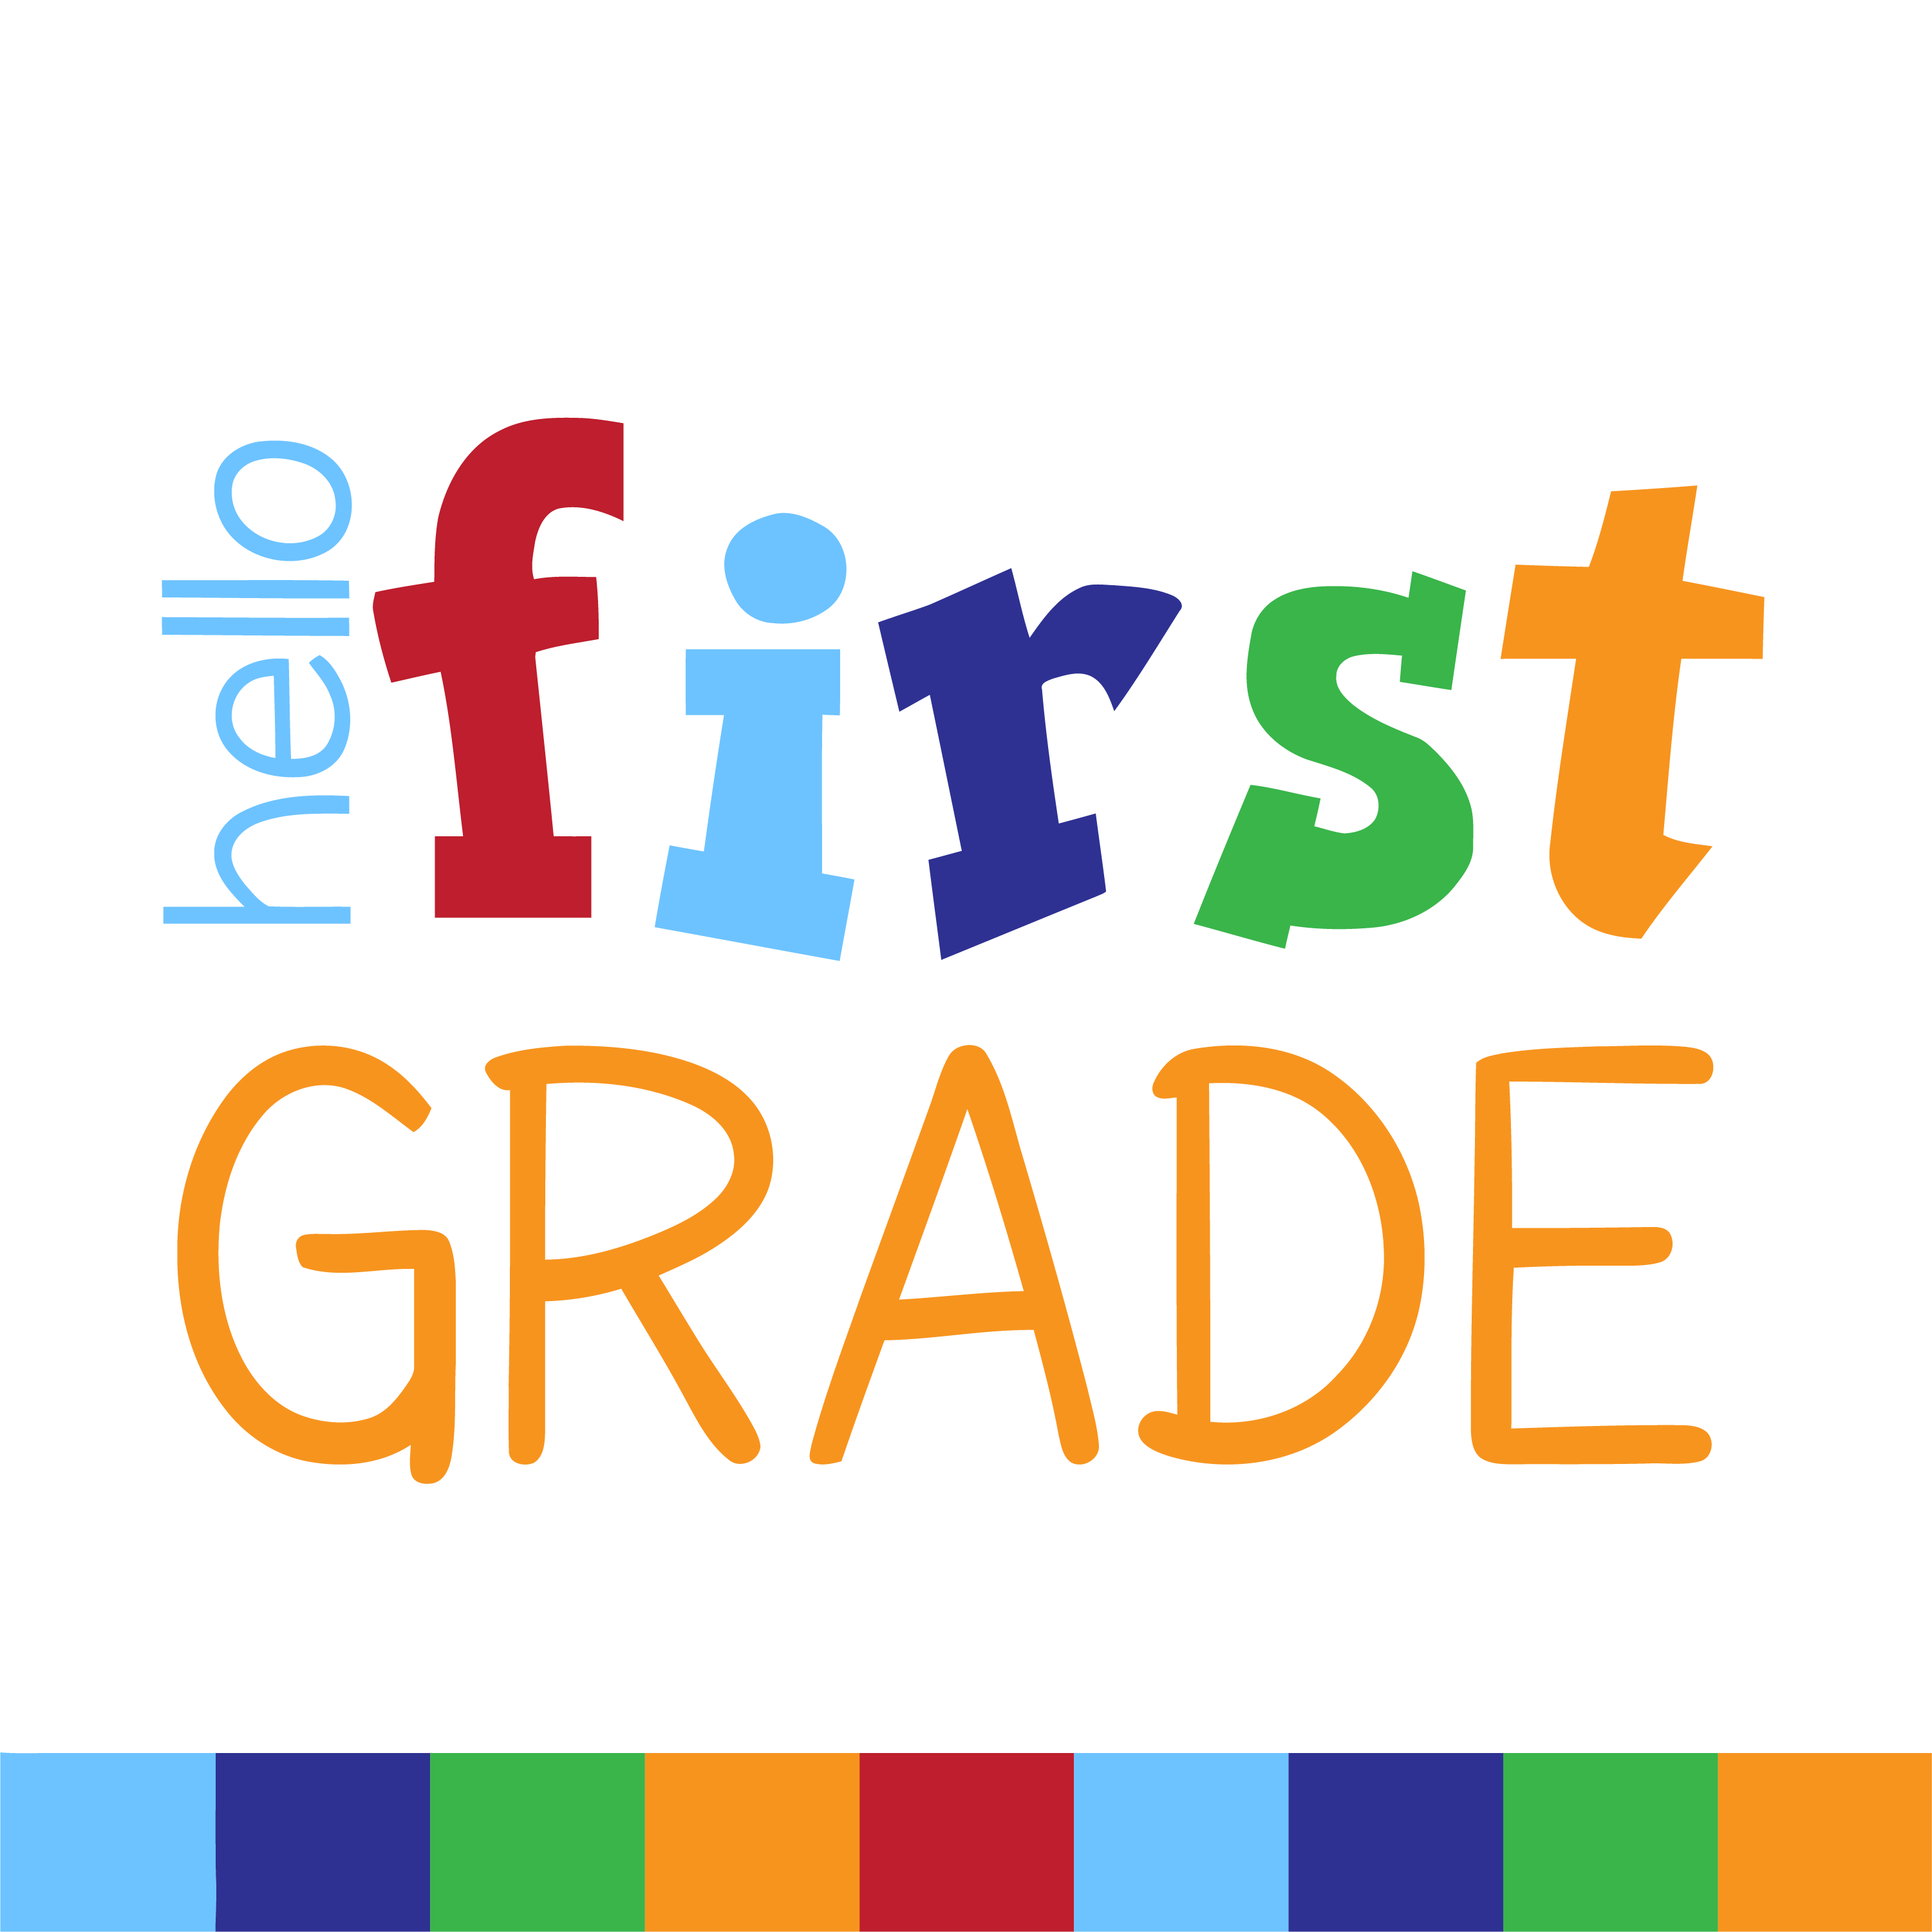 Clipart 1st grade image svg transparent stock hello first grade clipart png text – Clipartly.com svg transparent stock